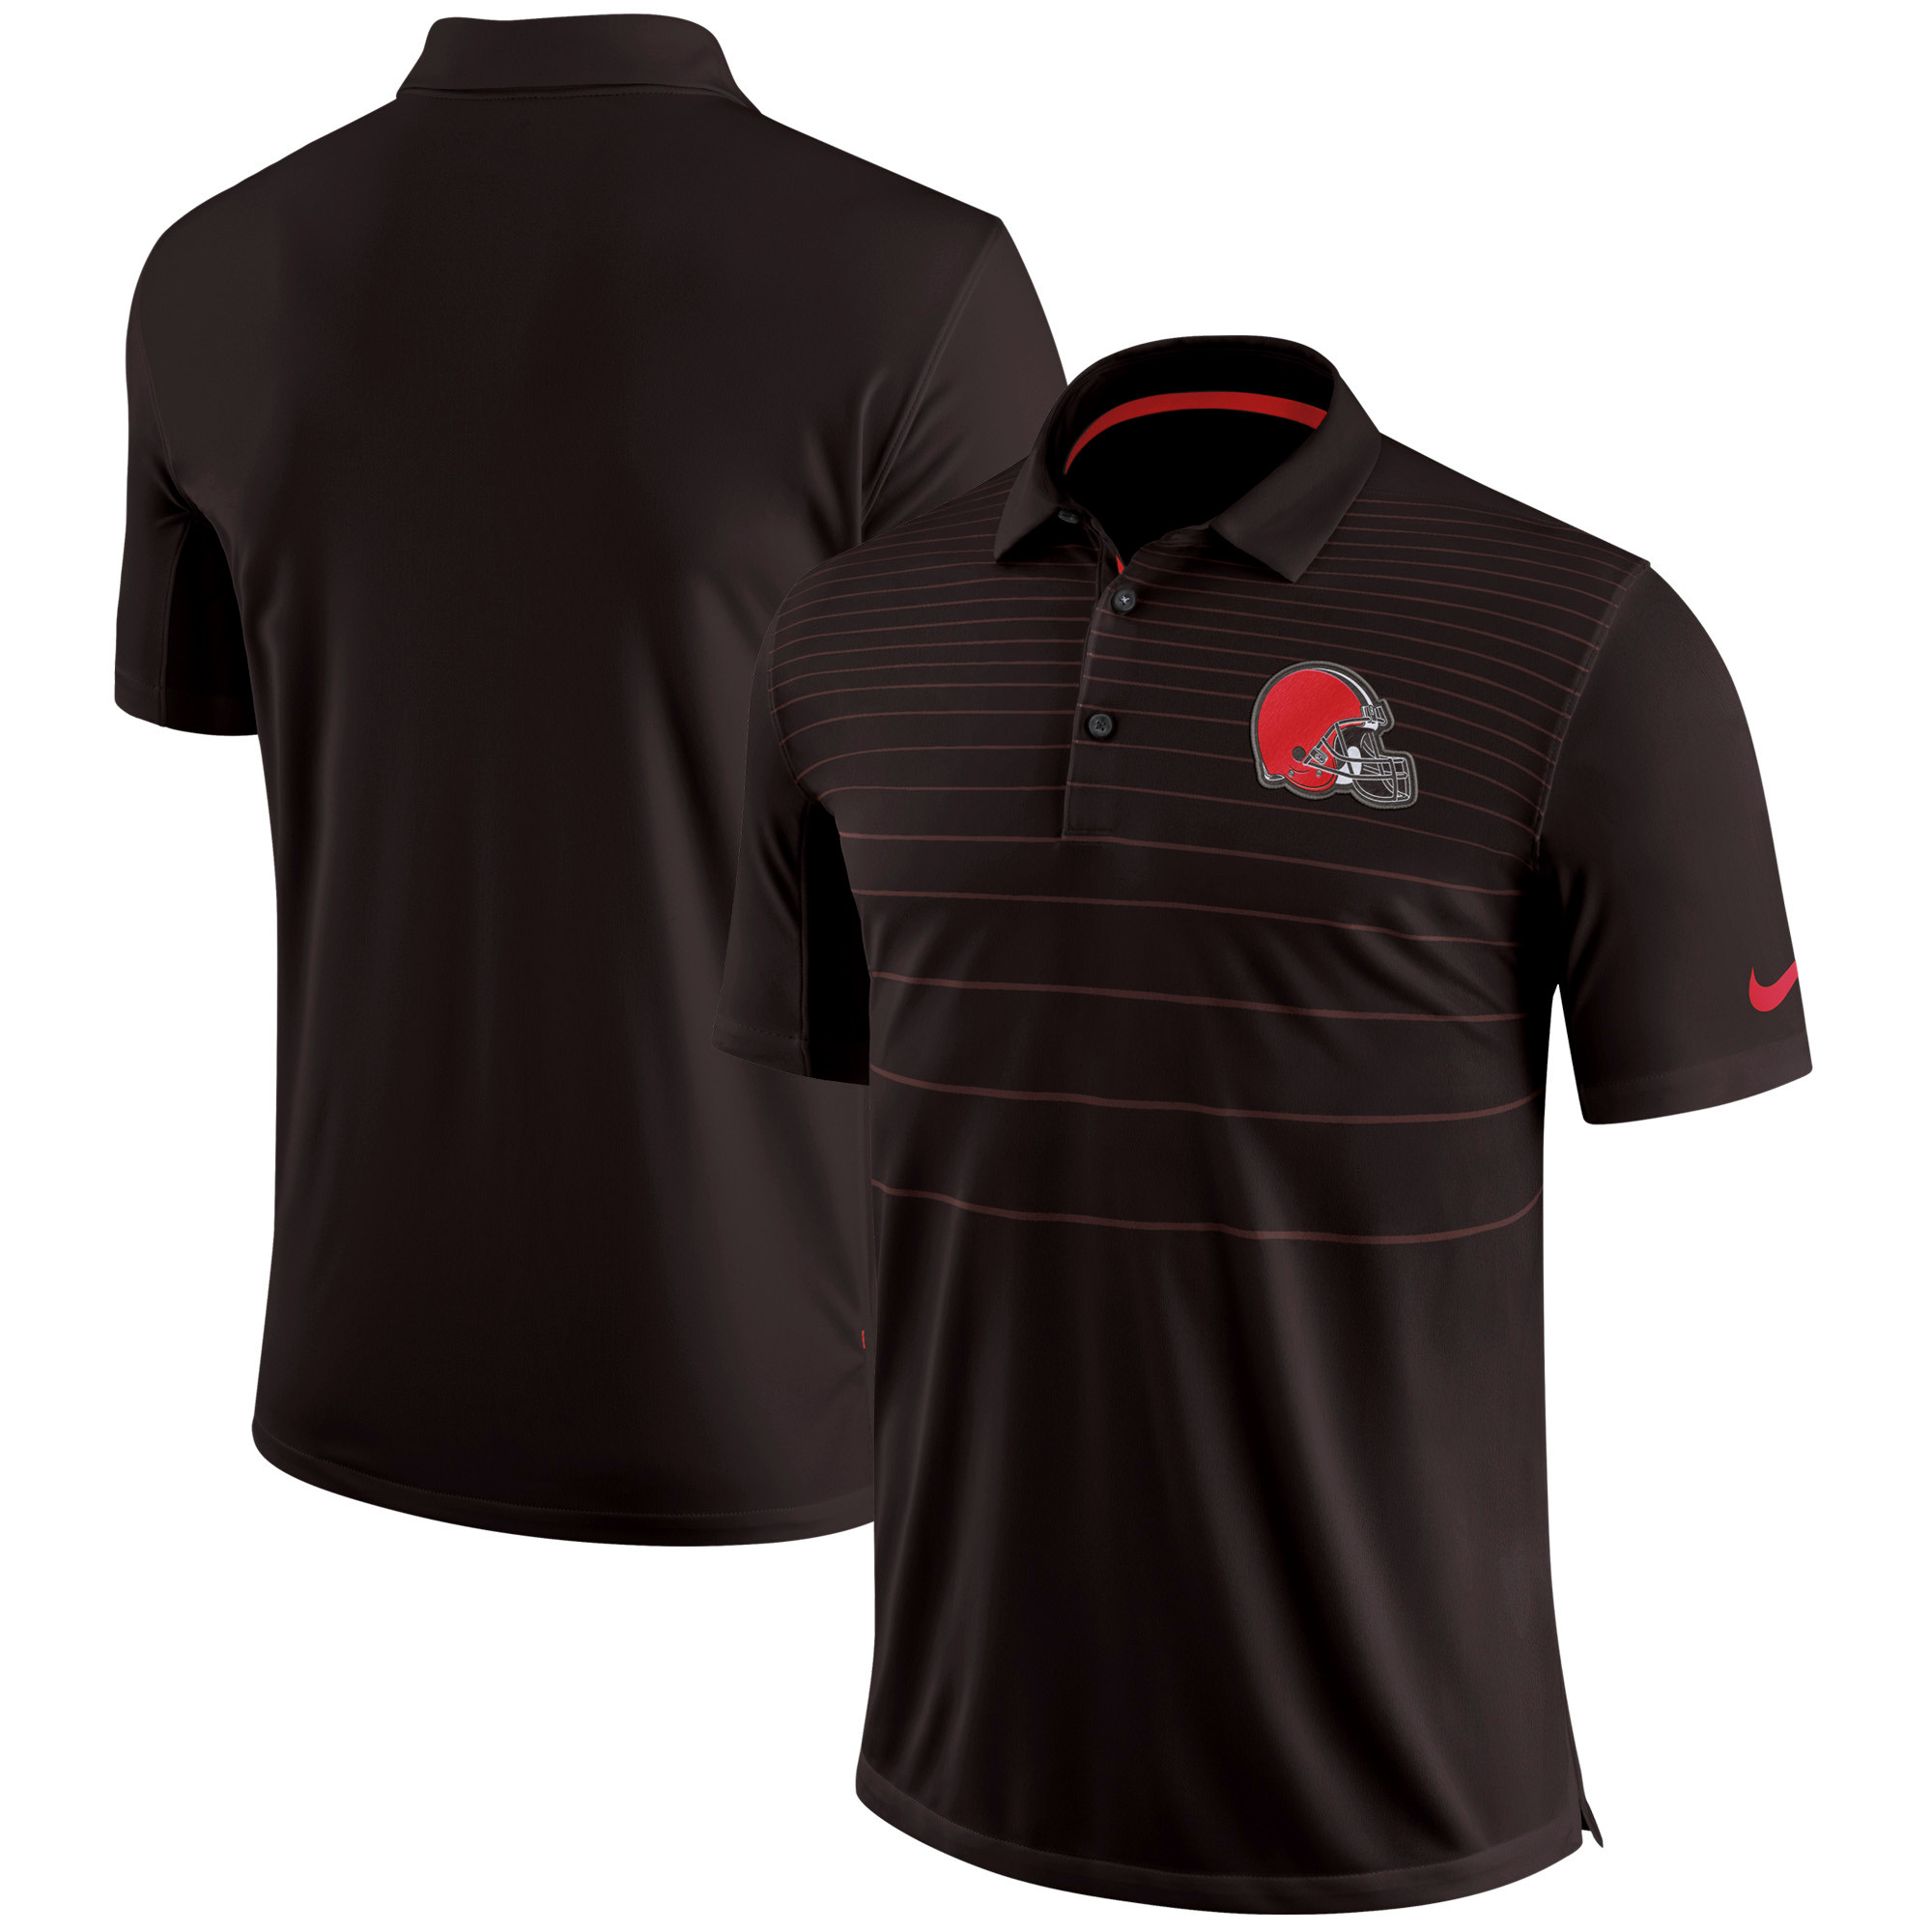 Cleveland Browns Nike Sideline Early Season Performance Polo - Brown - S